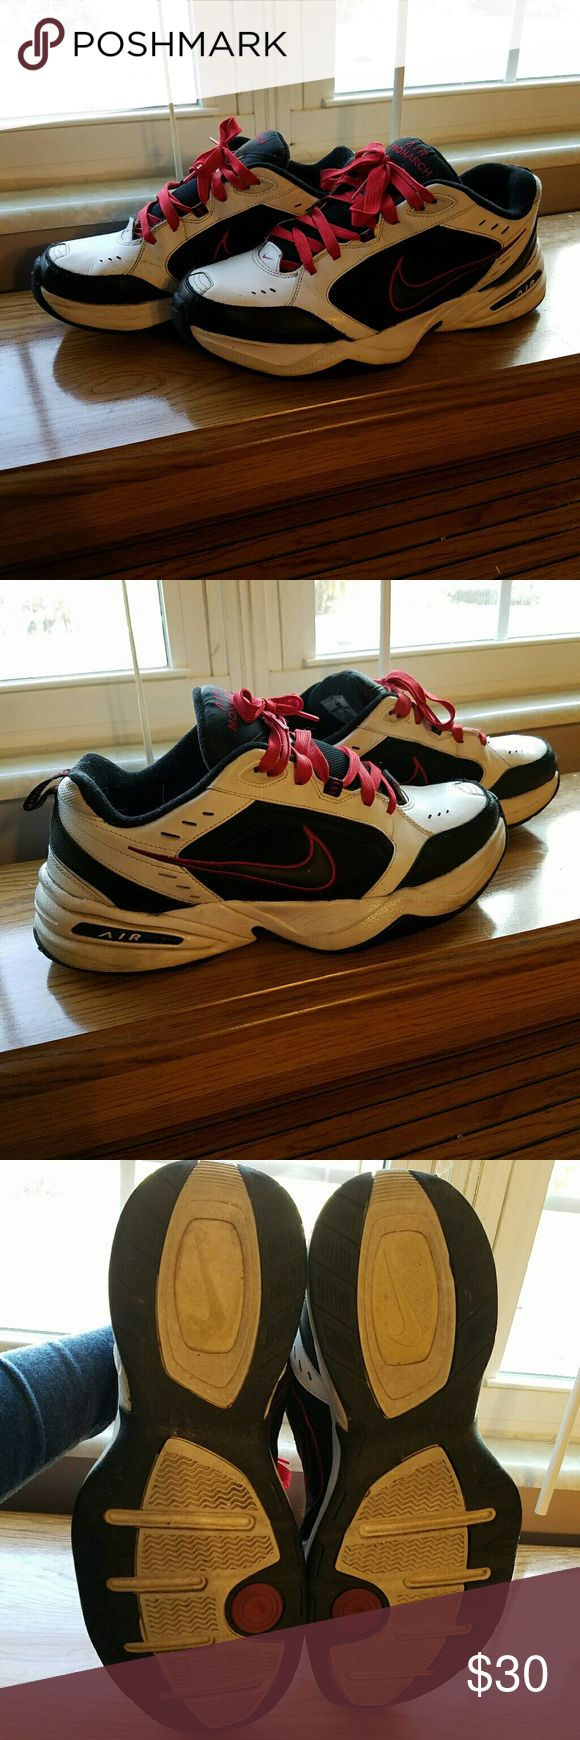 Men's Nike Air Monarch tennis shoes Hardly worn. Still have ALOT of life left in them. They are red white and black. Nike Shoes Sneakers